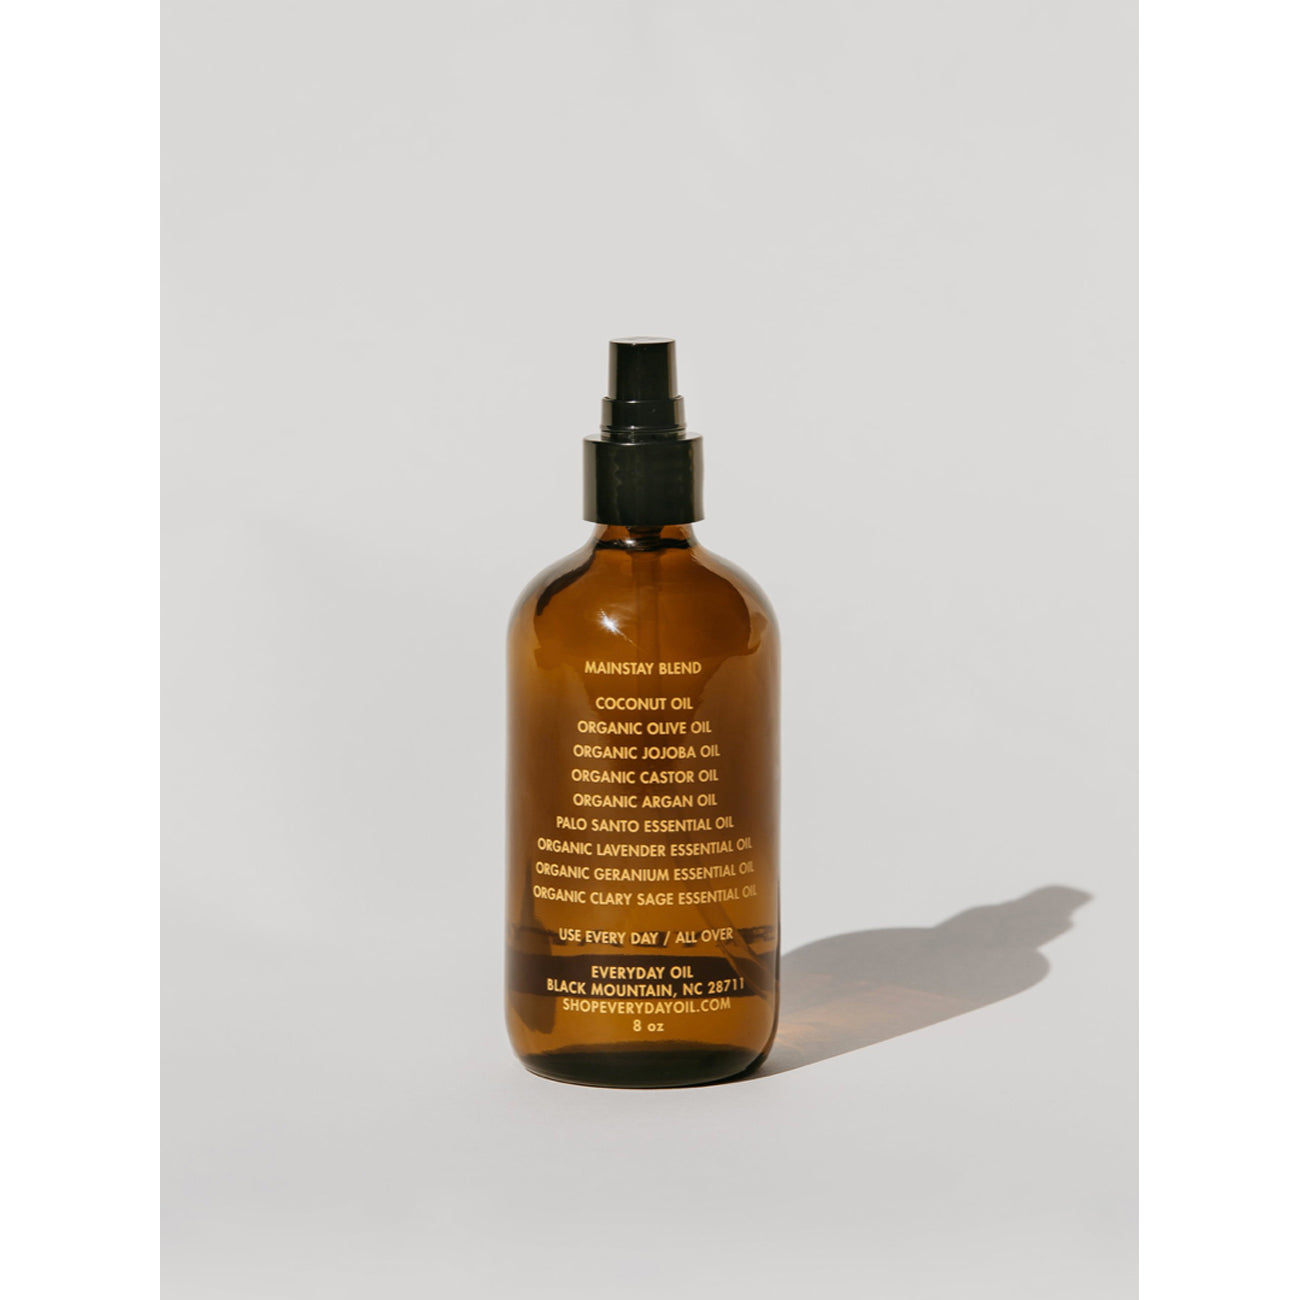 everyday oil mainstay blend: 8 oz